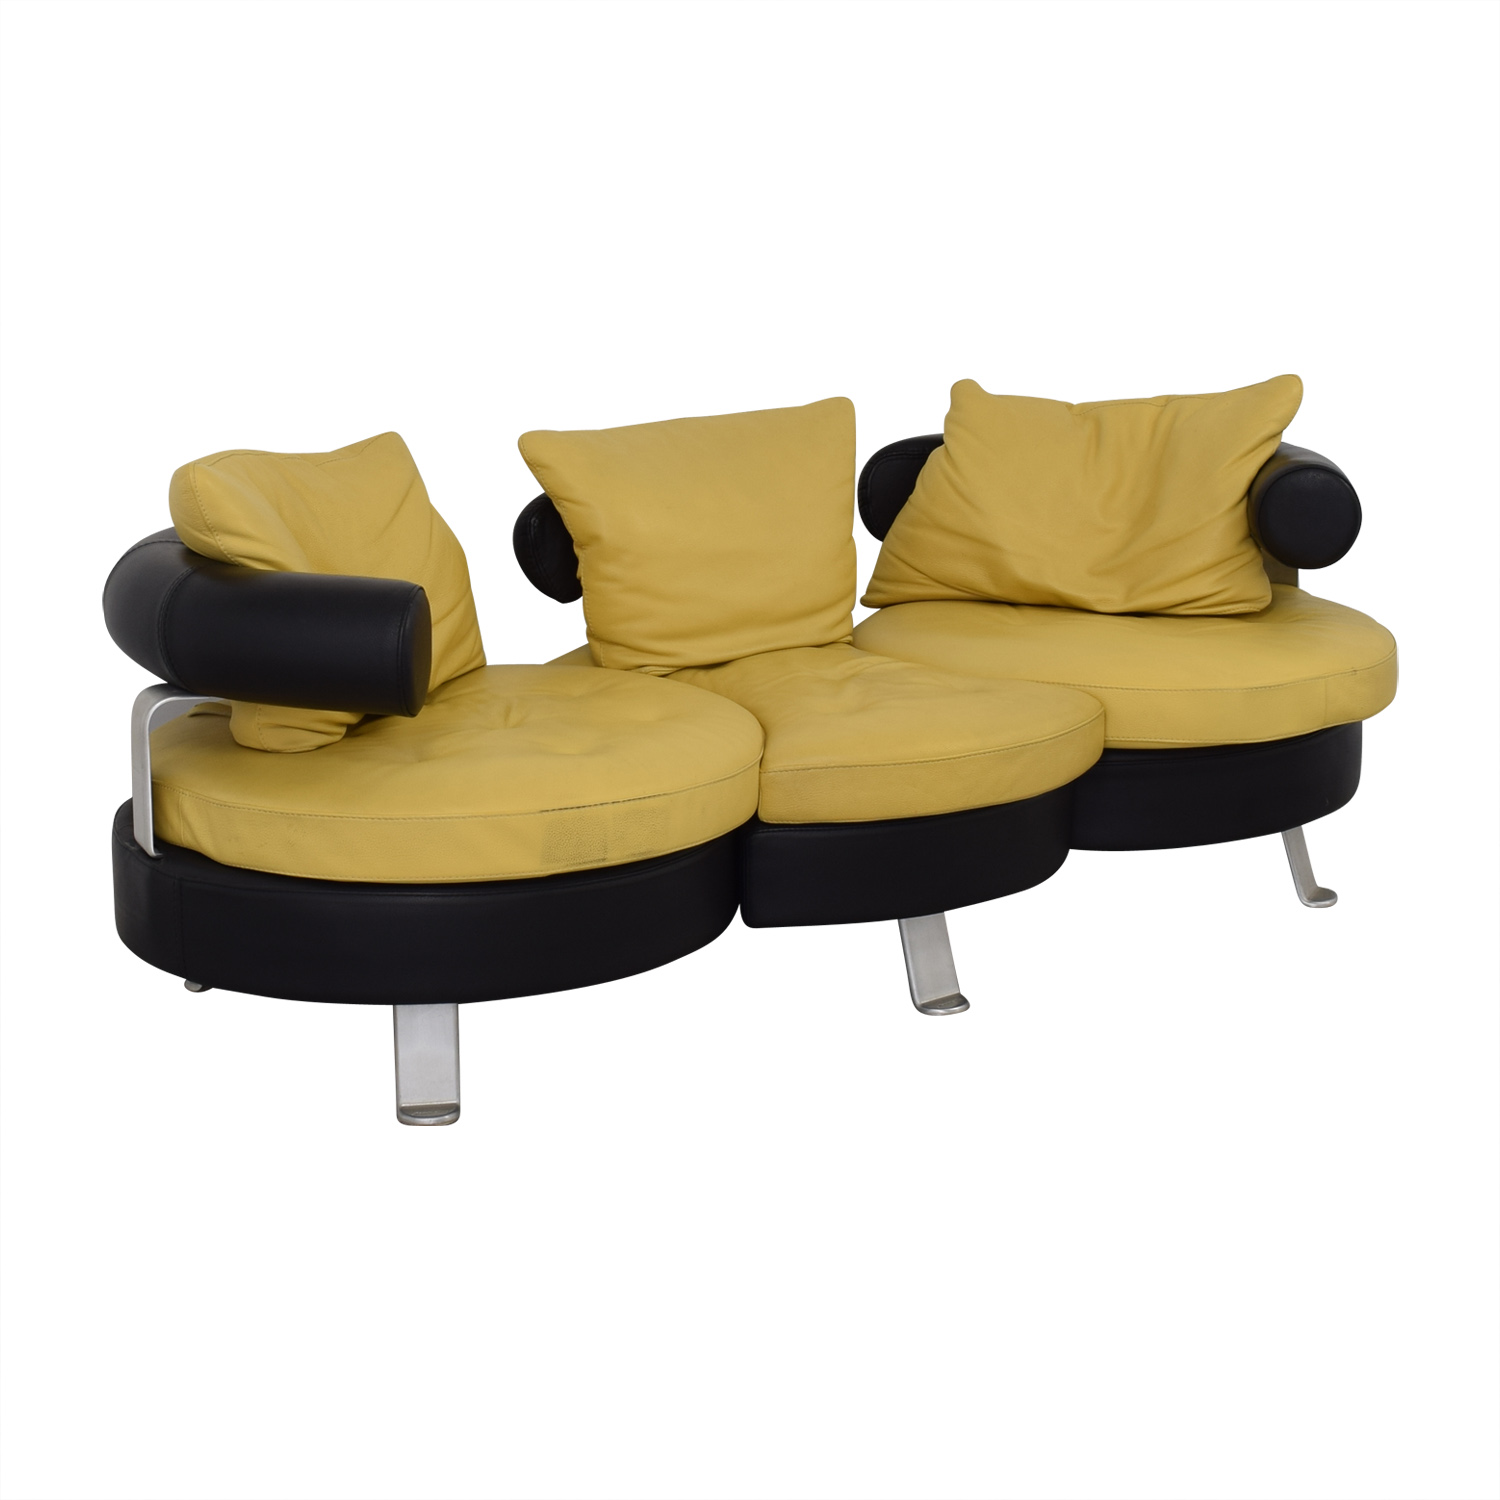 Formenti Formenti Formenti Divani Contemporary Original Swivel Sofa second hand